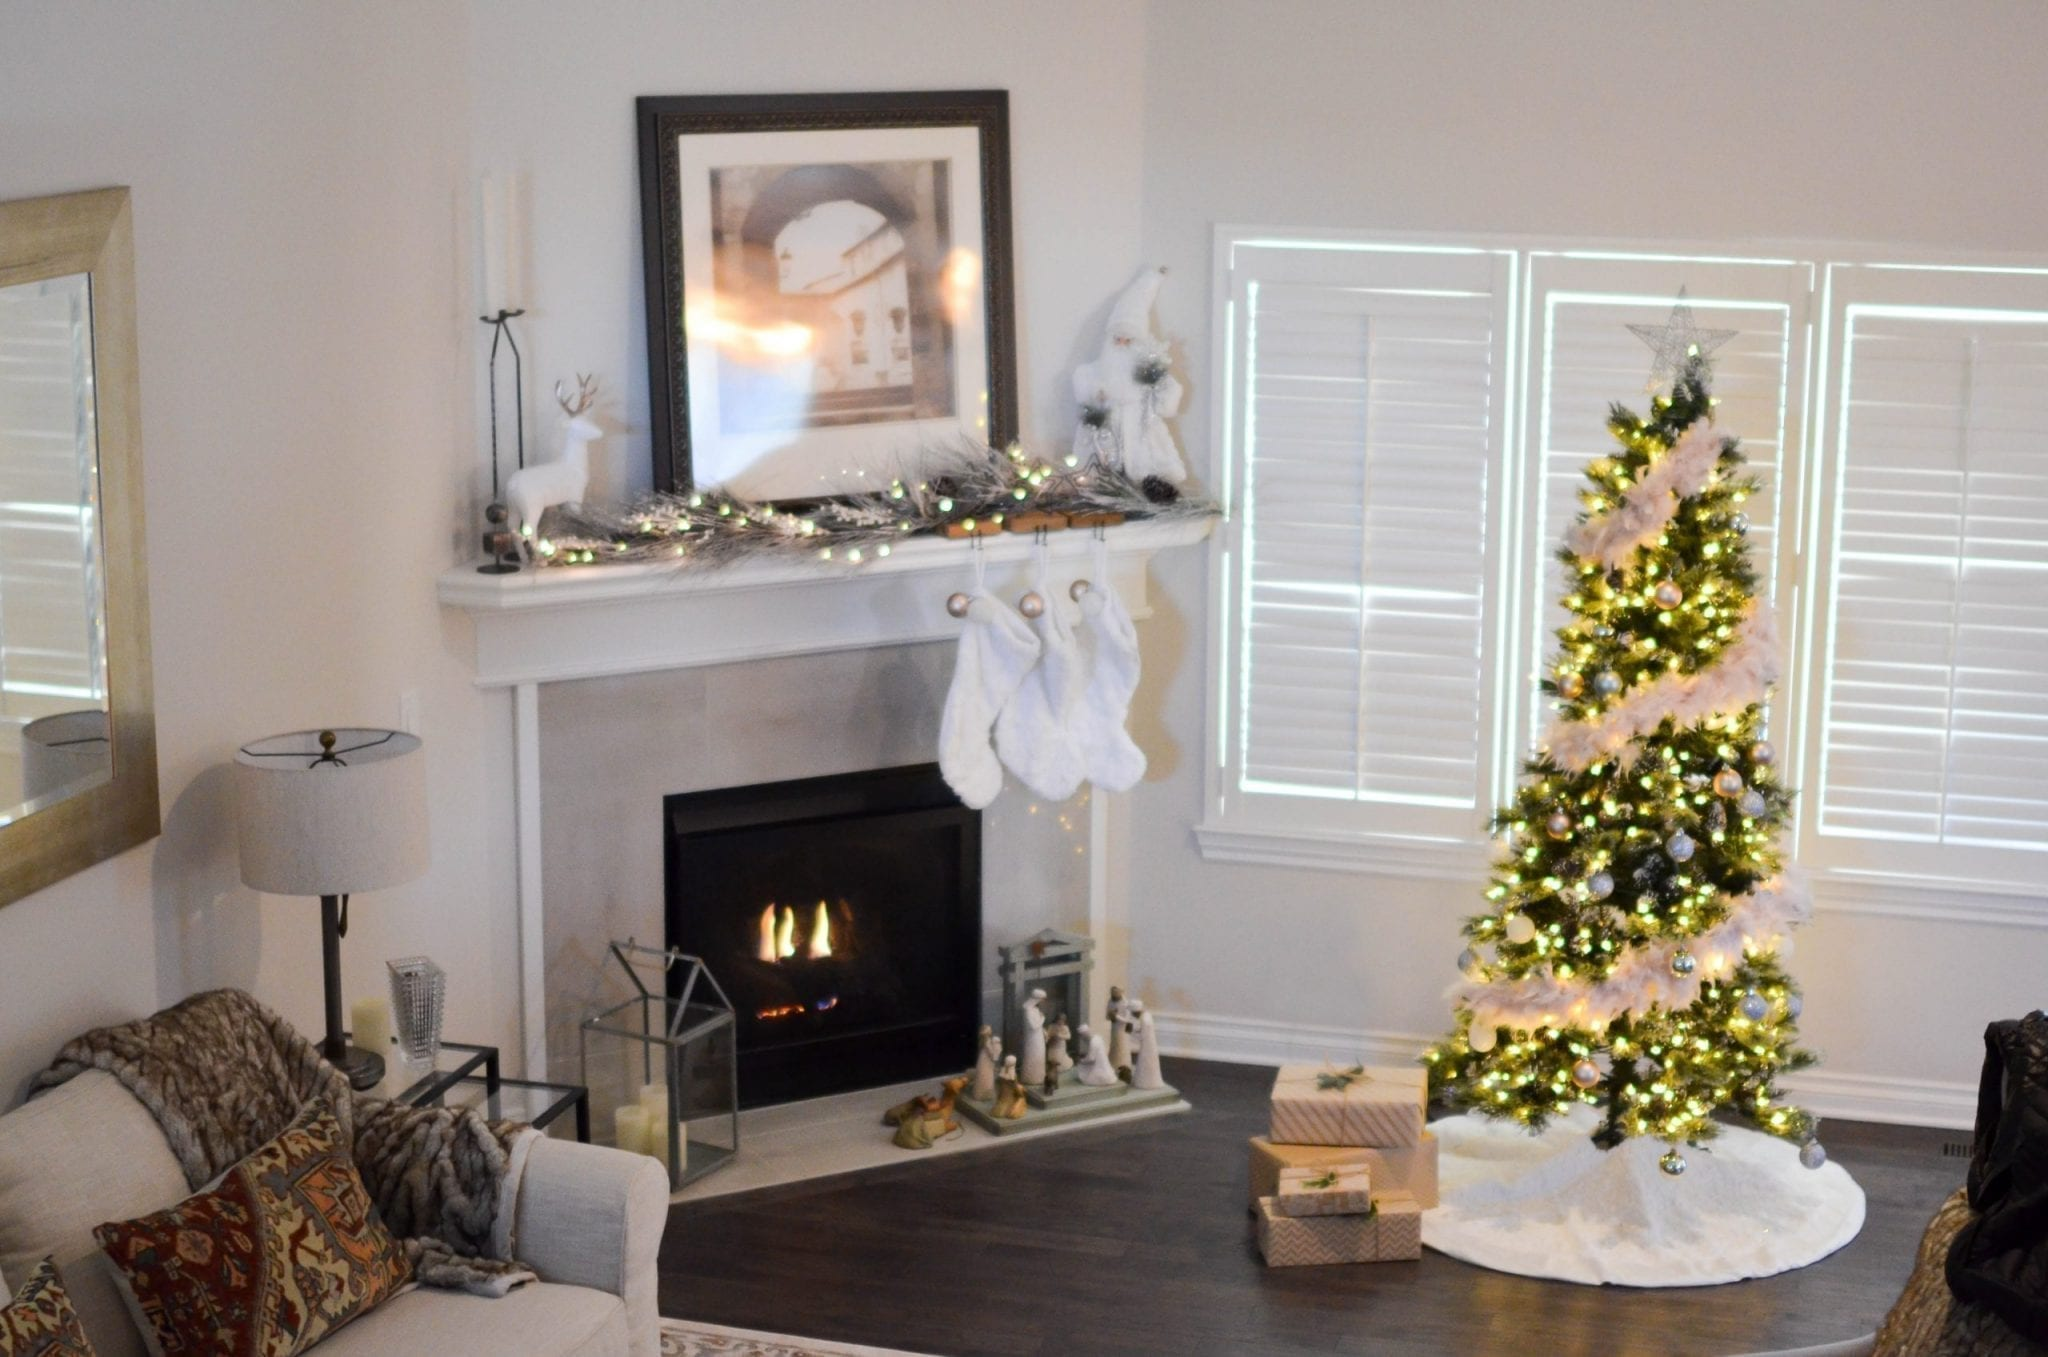 Canva - Green and White Pre-lit Pine Tree Near Fireplace Inside Well Lit Room